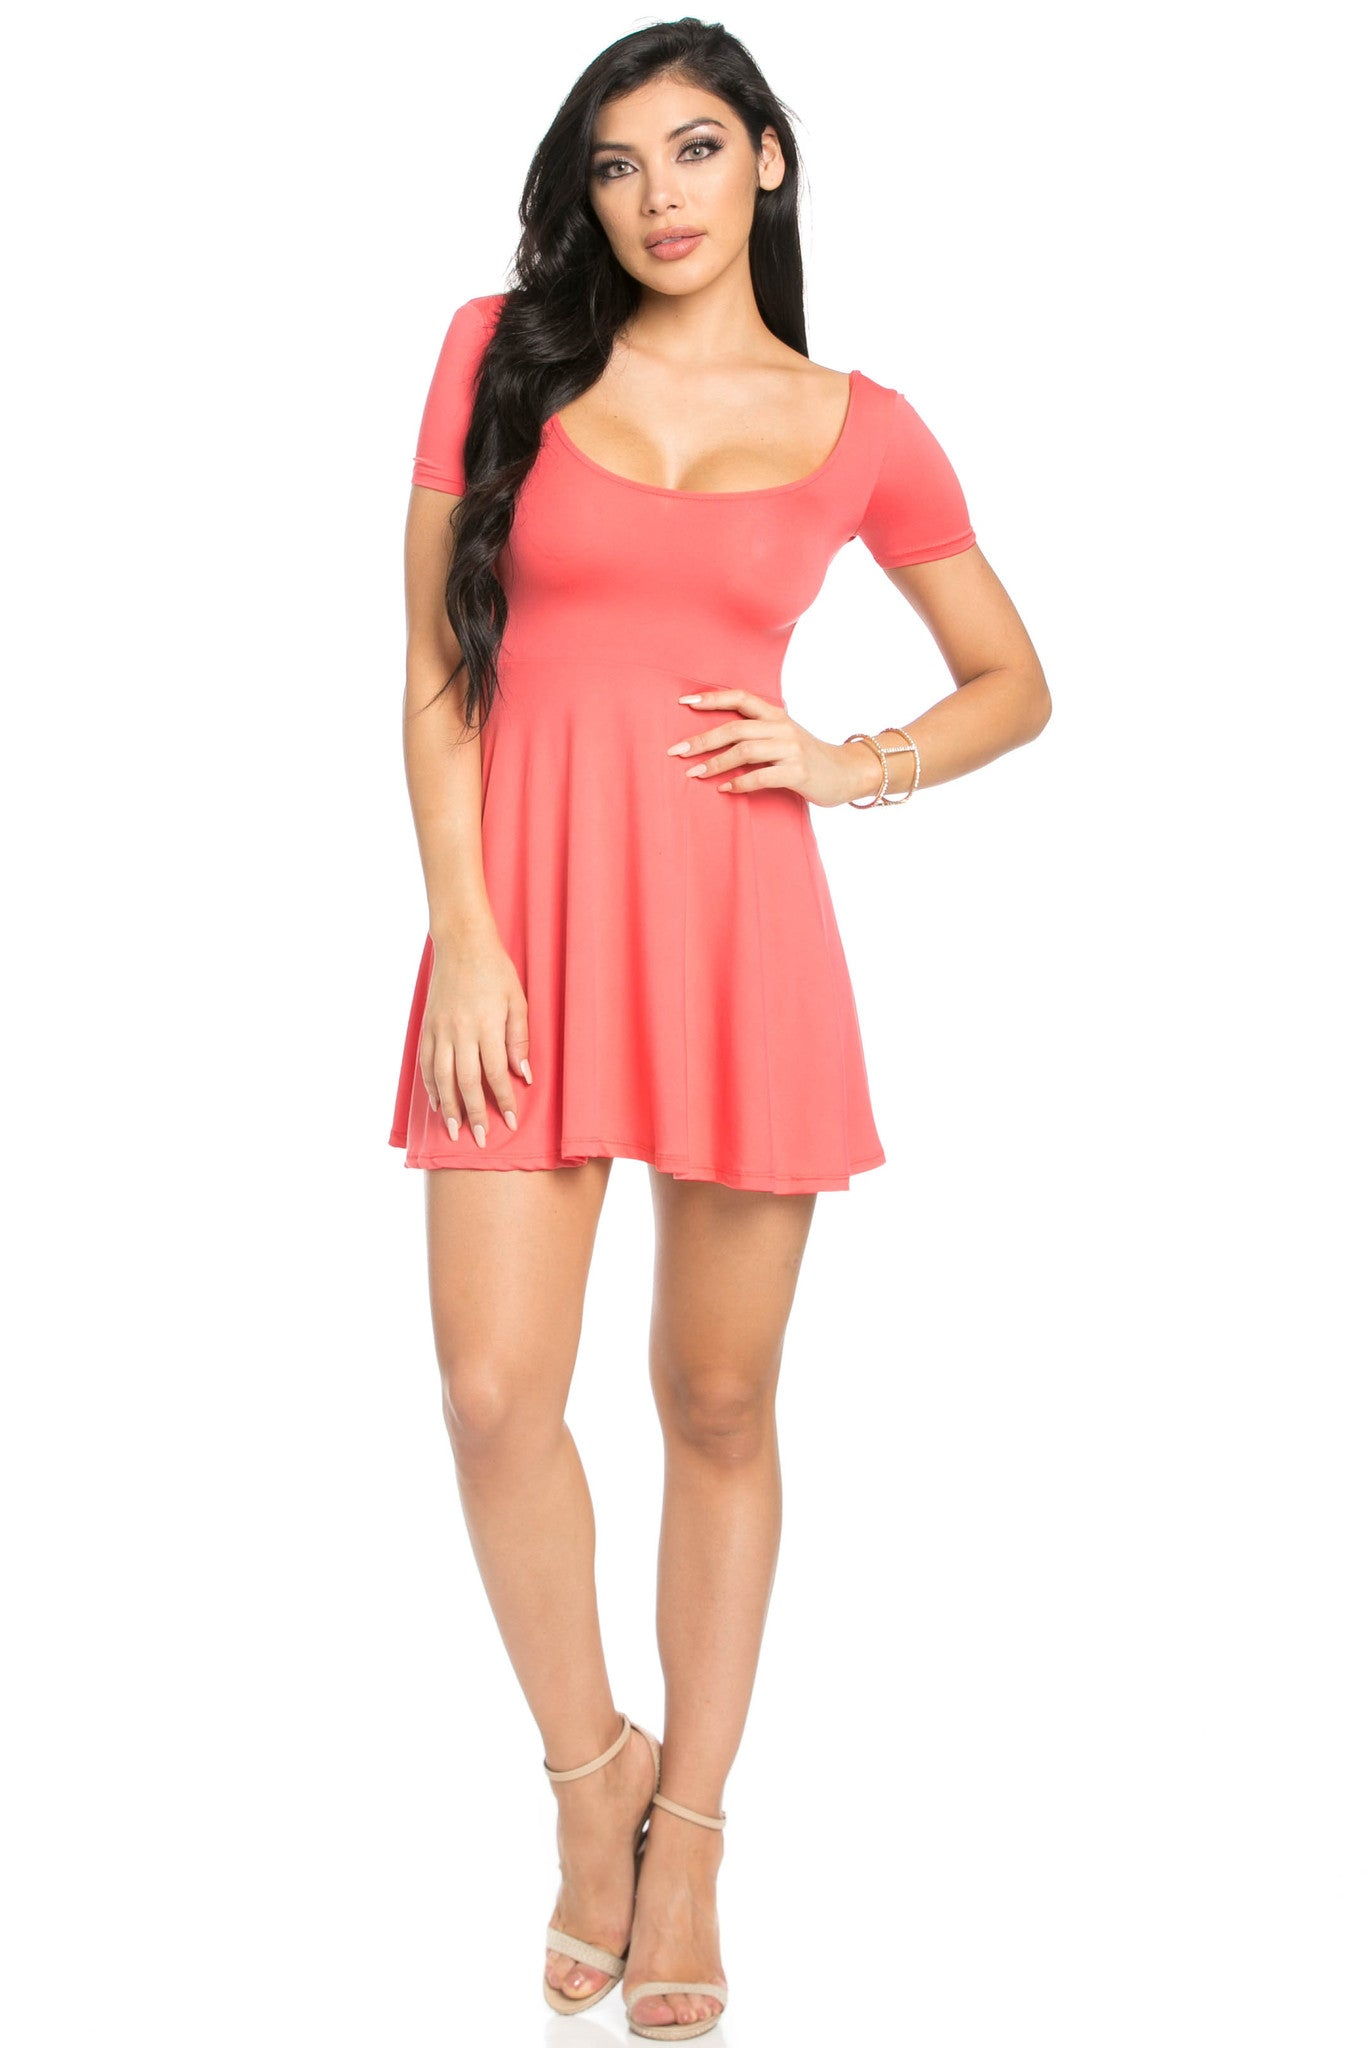 Micro Suede Coral Mini Dress - Dresses - My Yuccie - 5